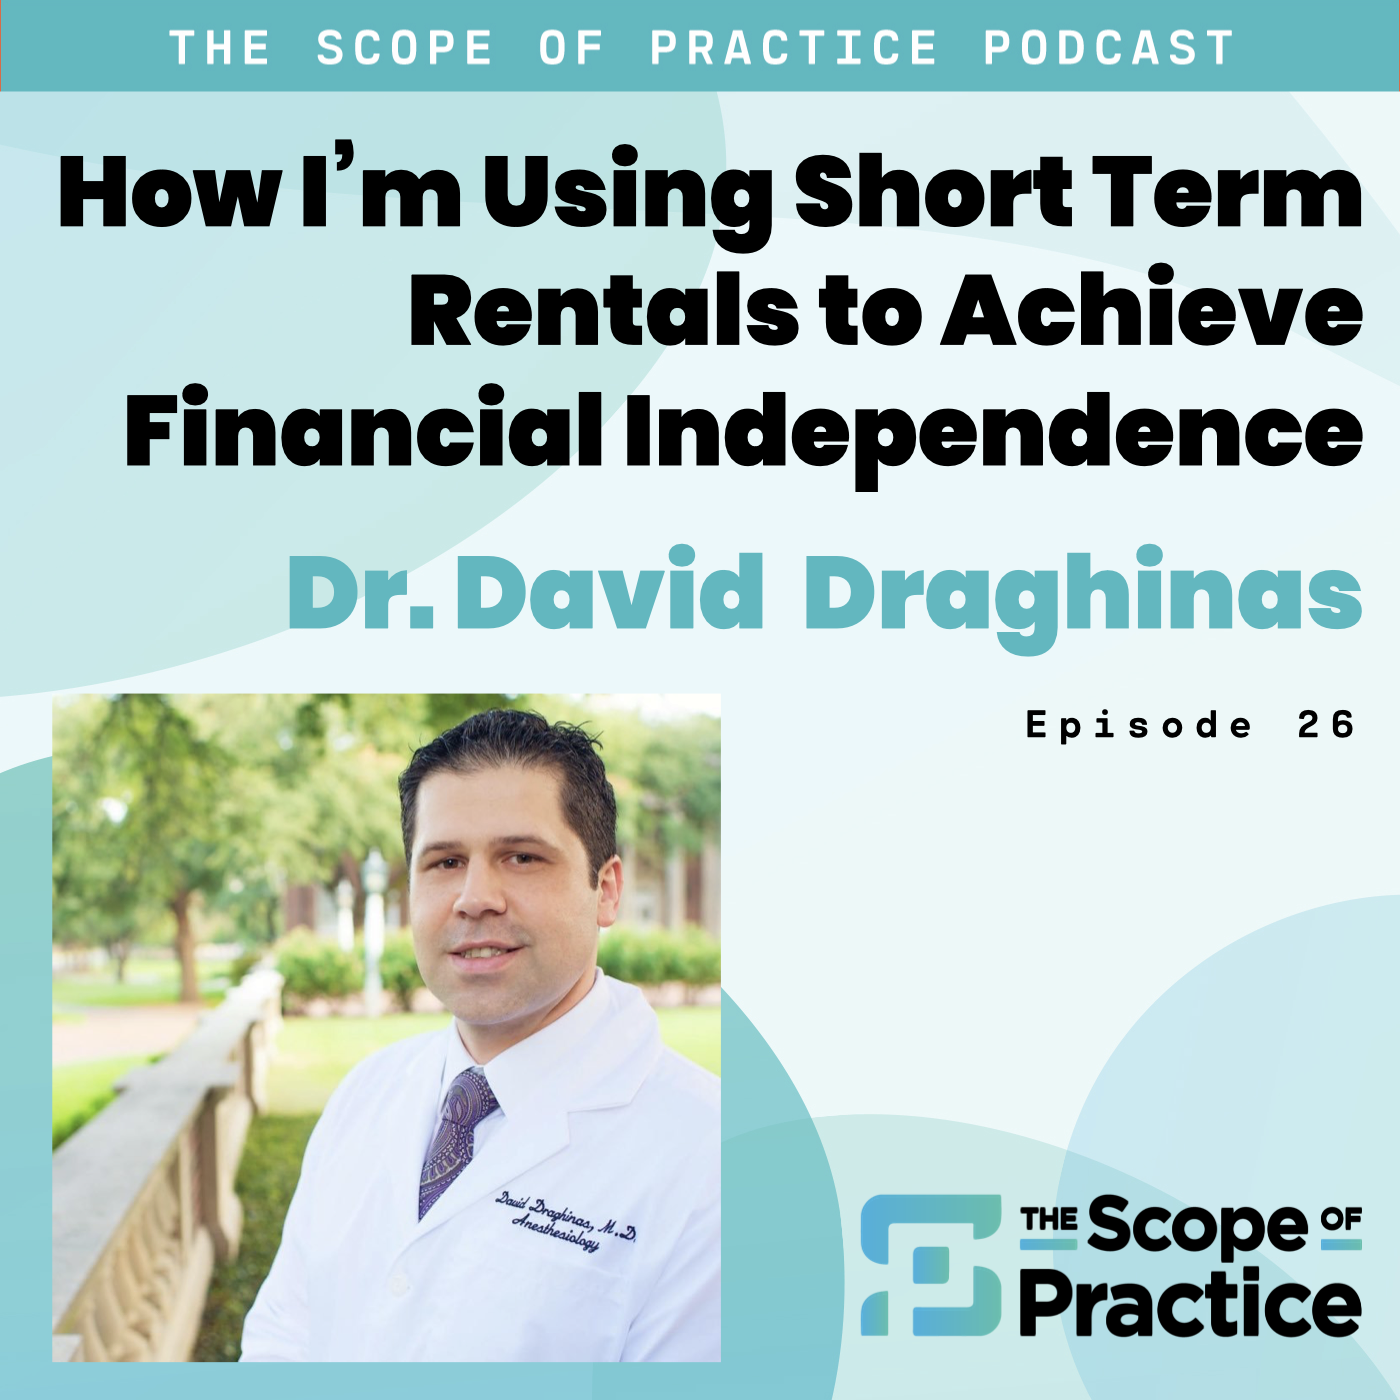 Short term rentals with Dr. David Draghinas